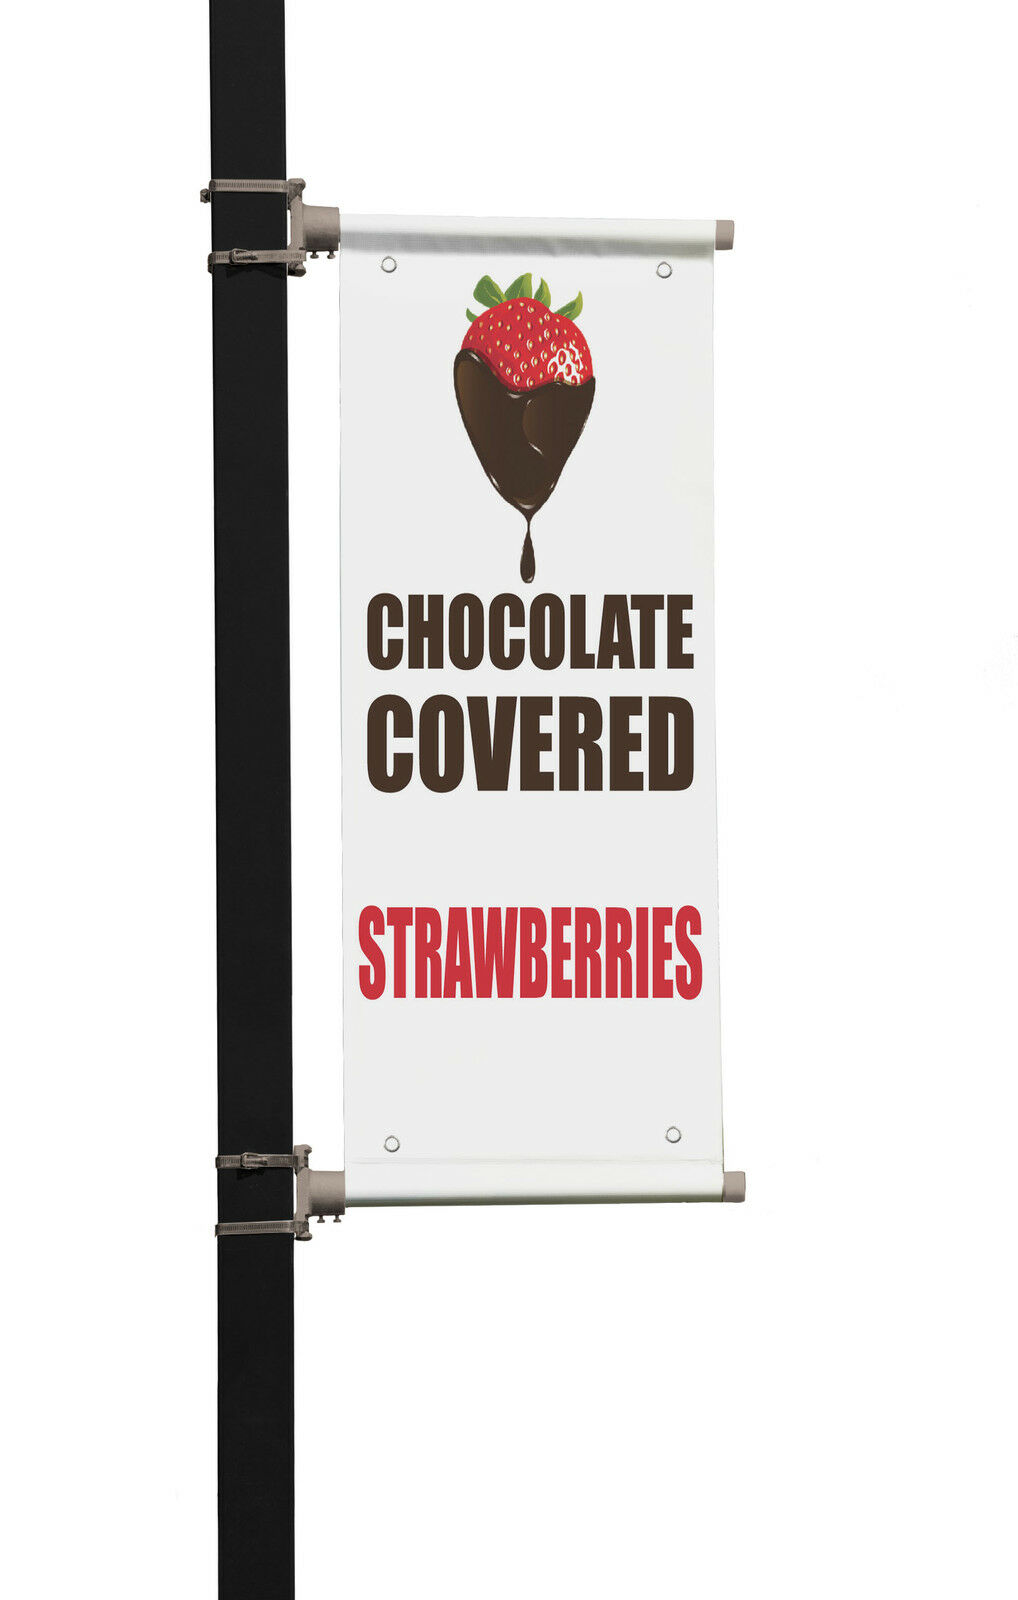 Tomatoes Food Fair Promotion Business Double Sided Vertical Pole Banner Sign